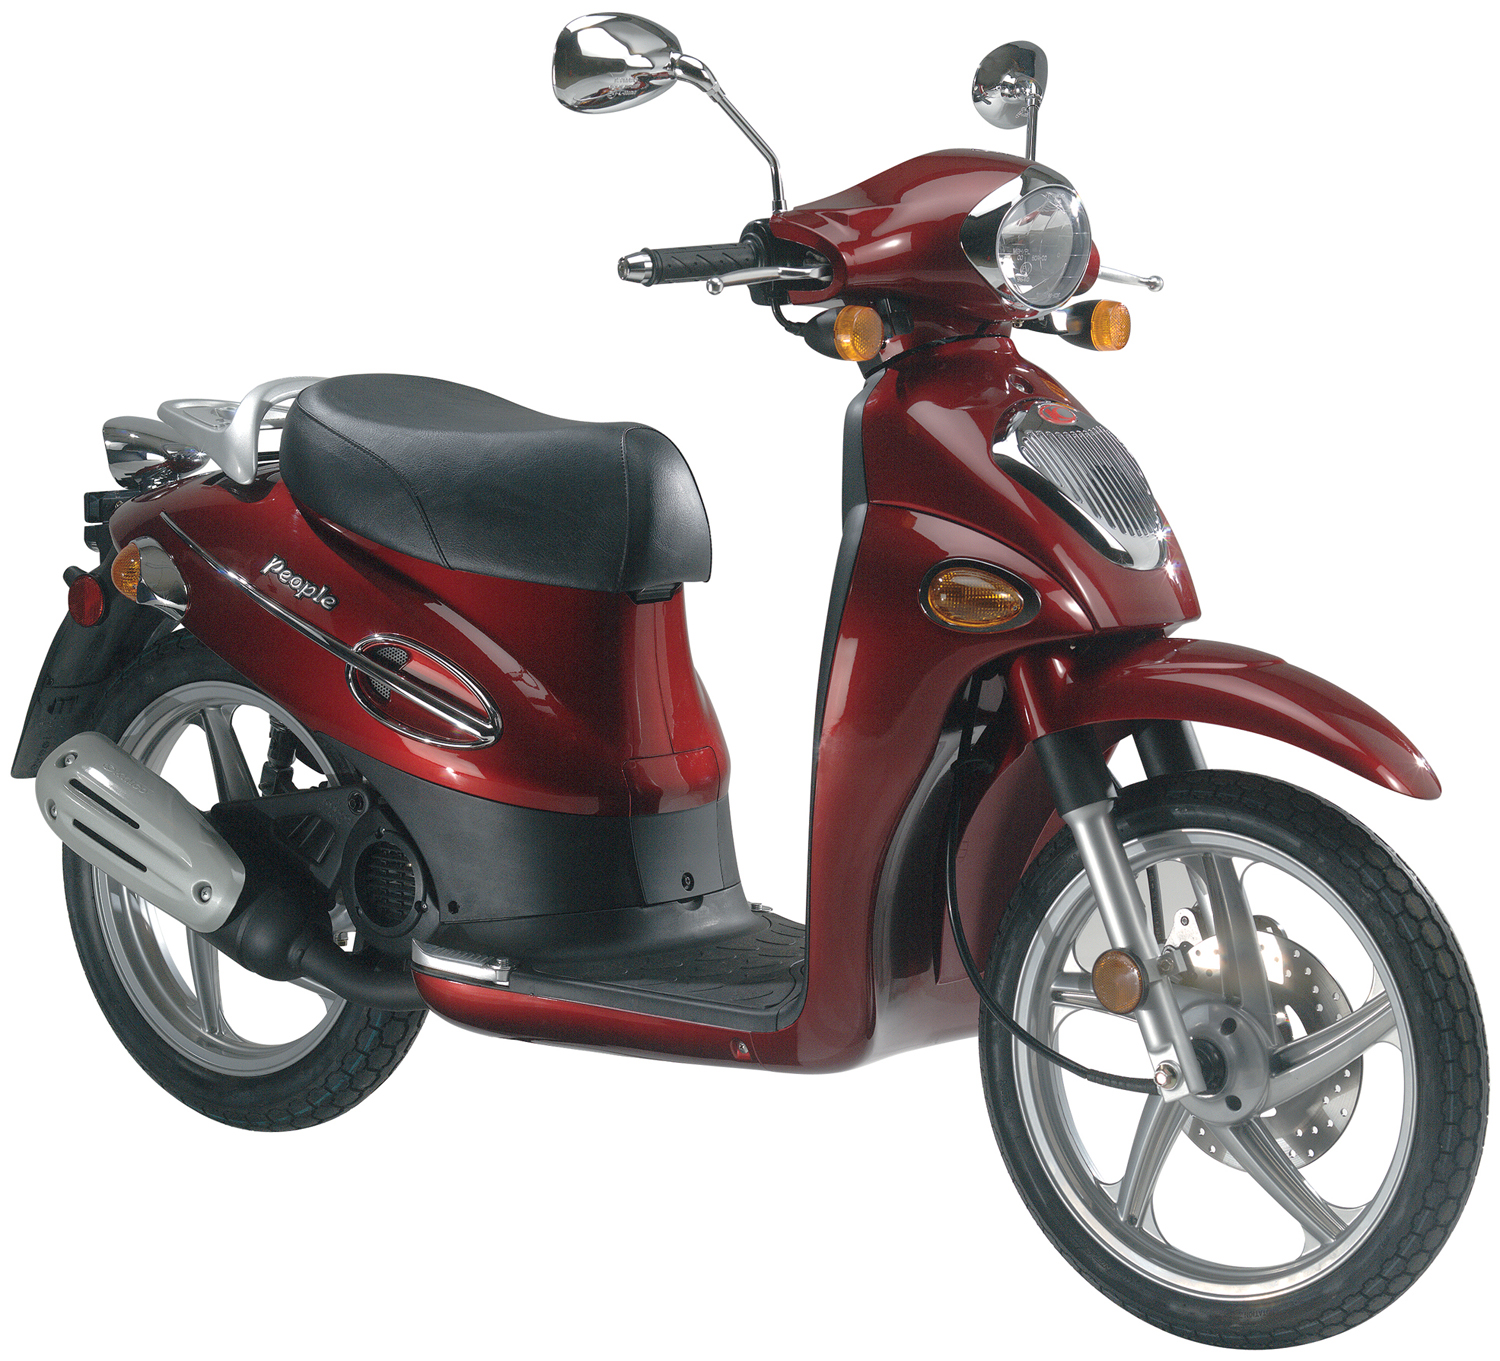 Kymco Vitality 50 2005 images #101904